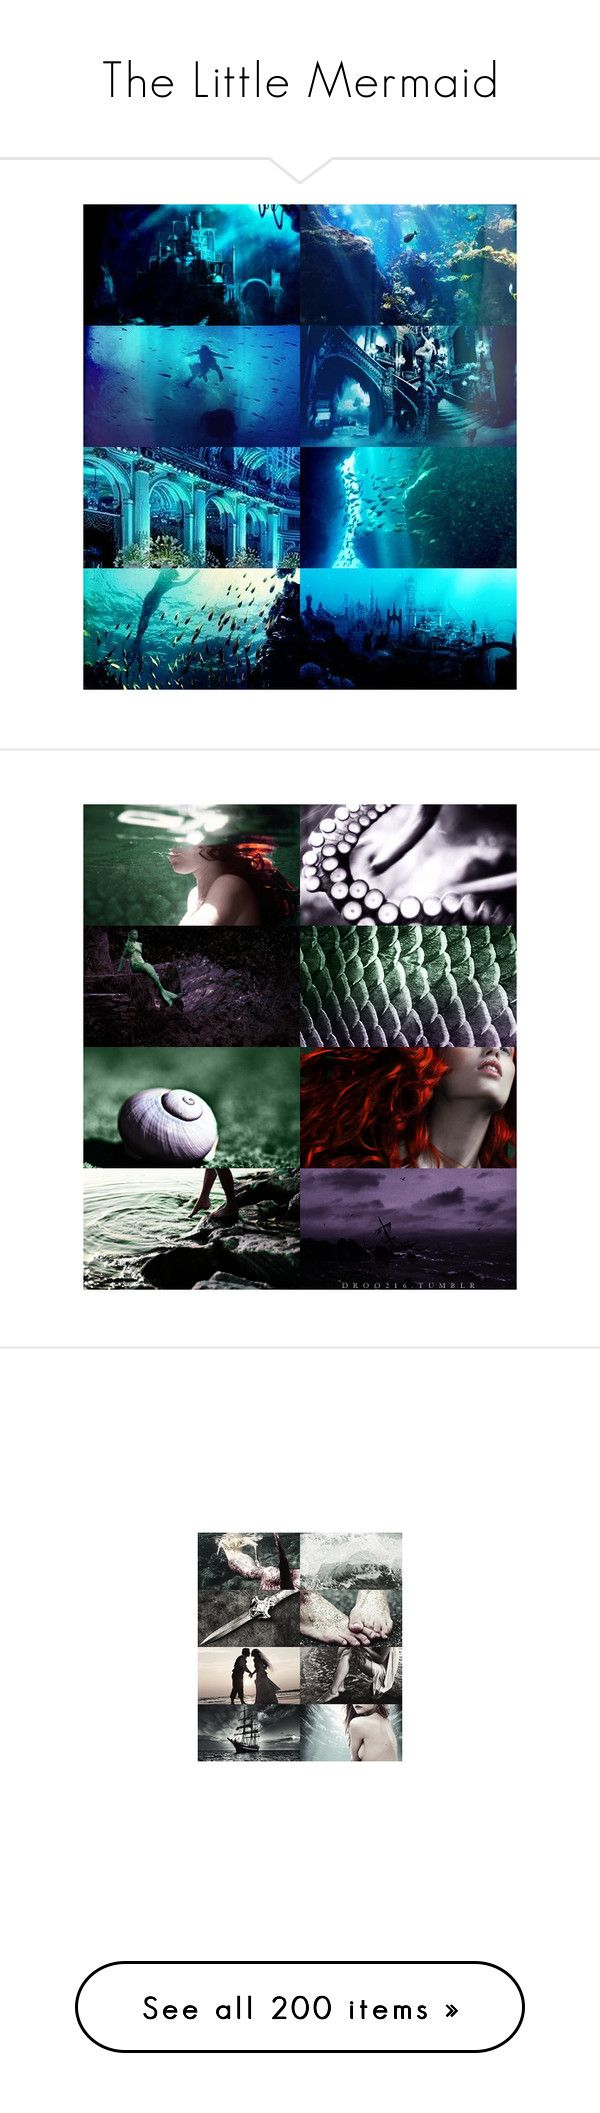 """""""The Little Mermaid"""" by srta-sr ❤ liked on Polyvore featuring smrlittlemermaid, backgrounds, ariel, mermaids, disney, fantasy, mermaid, the little mermaid, pics and pictures"""